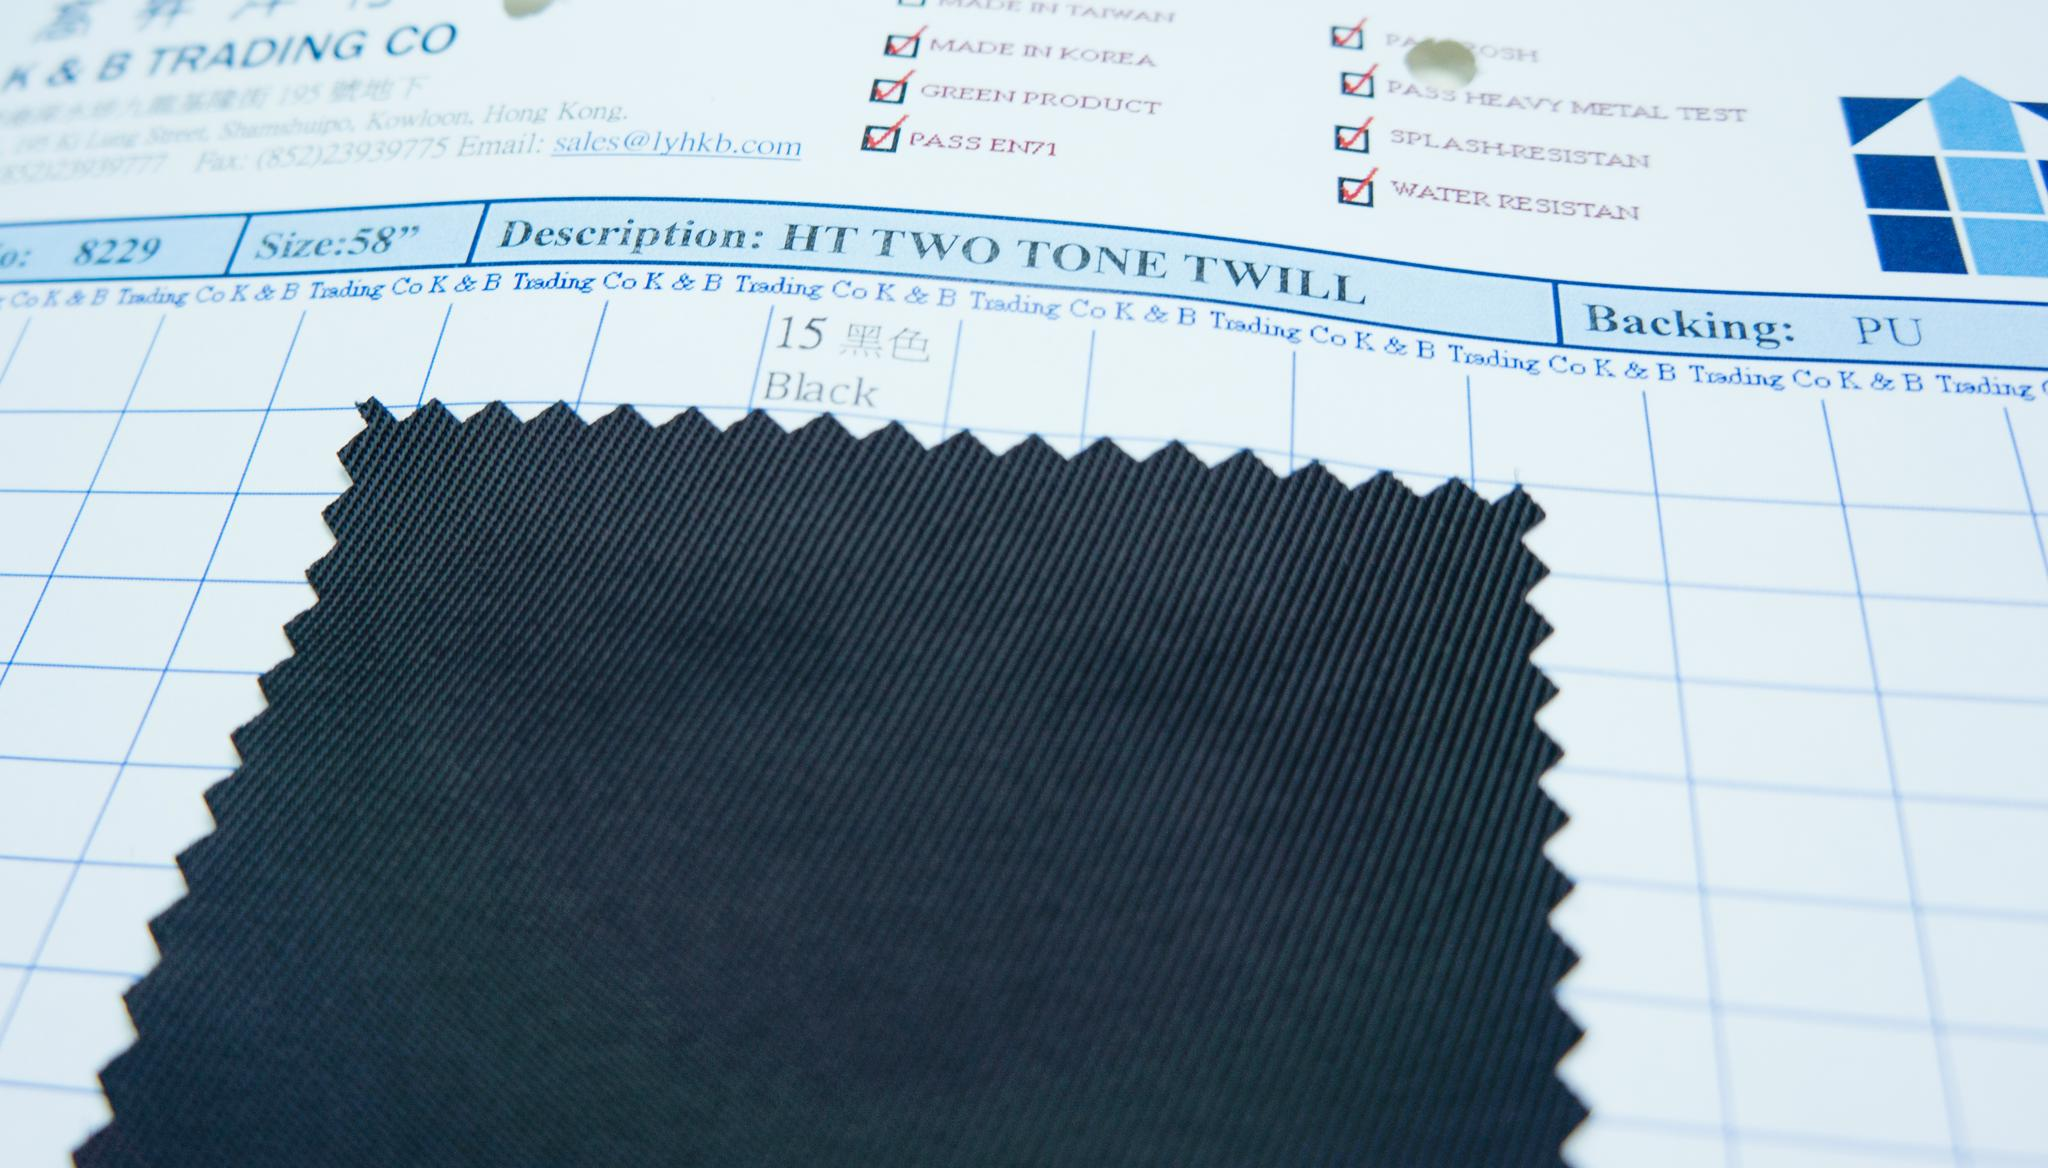 8229 ht two tone twill